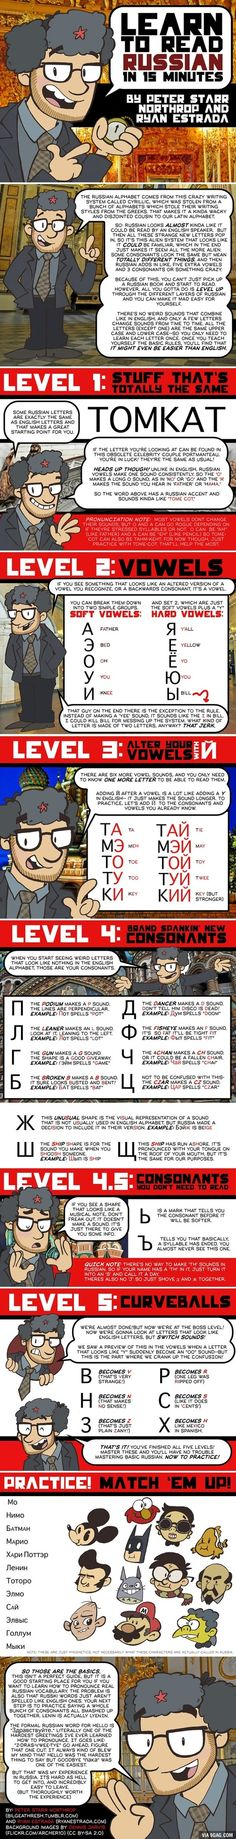 Learning #Russian alphabets in 15 minutes